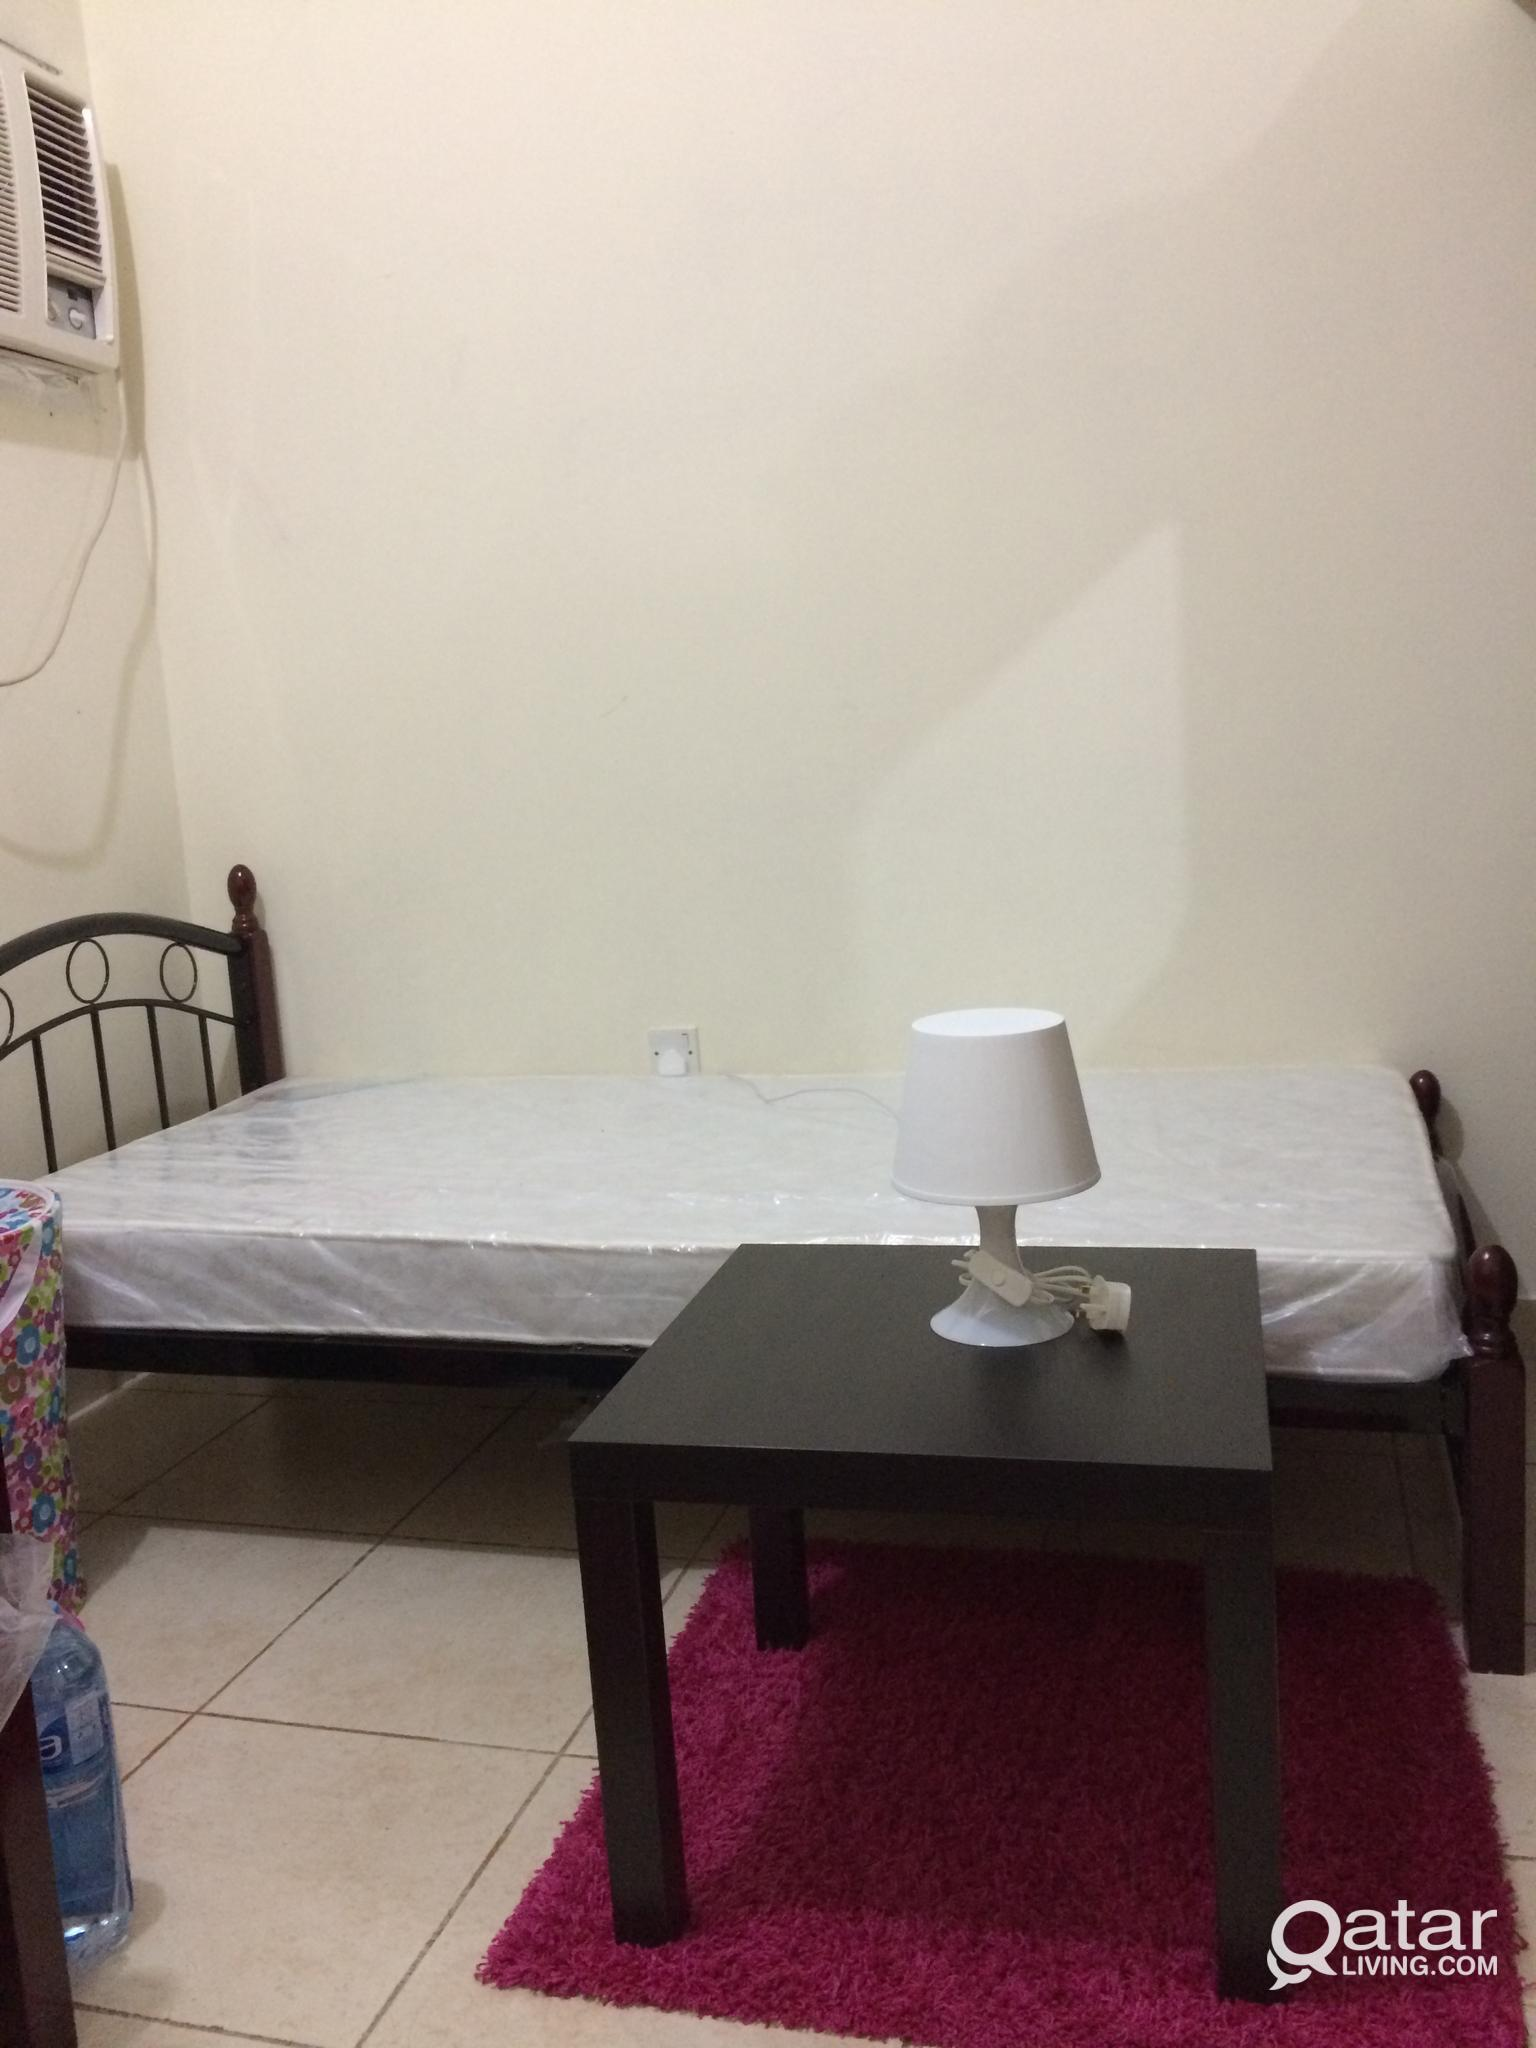 2 PERSON SHARING CONCRETE ROOM  Ready to Occupy.In